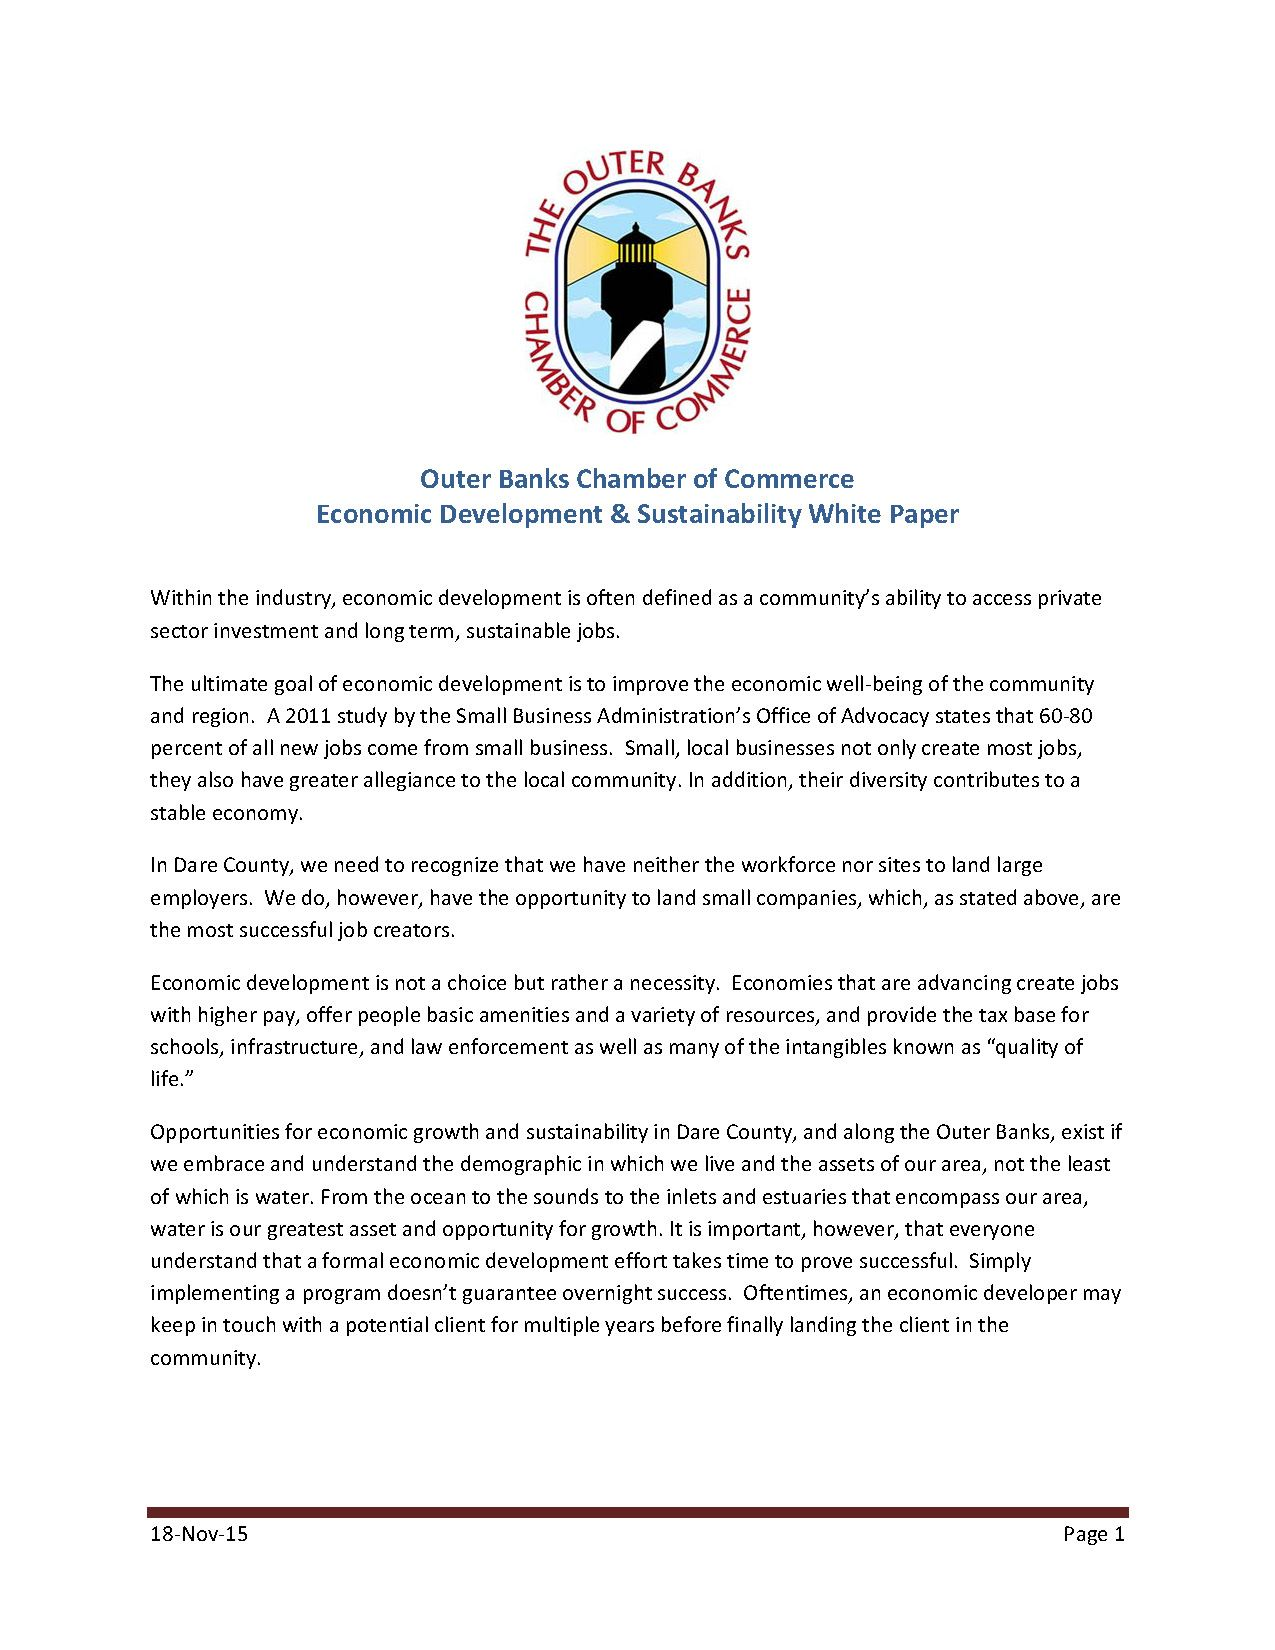 The Outer Banks Chamber of Commerce Economic Development & Sustainability White Paper